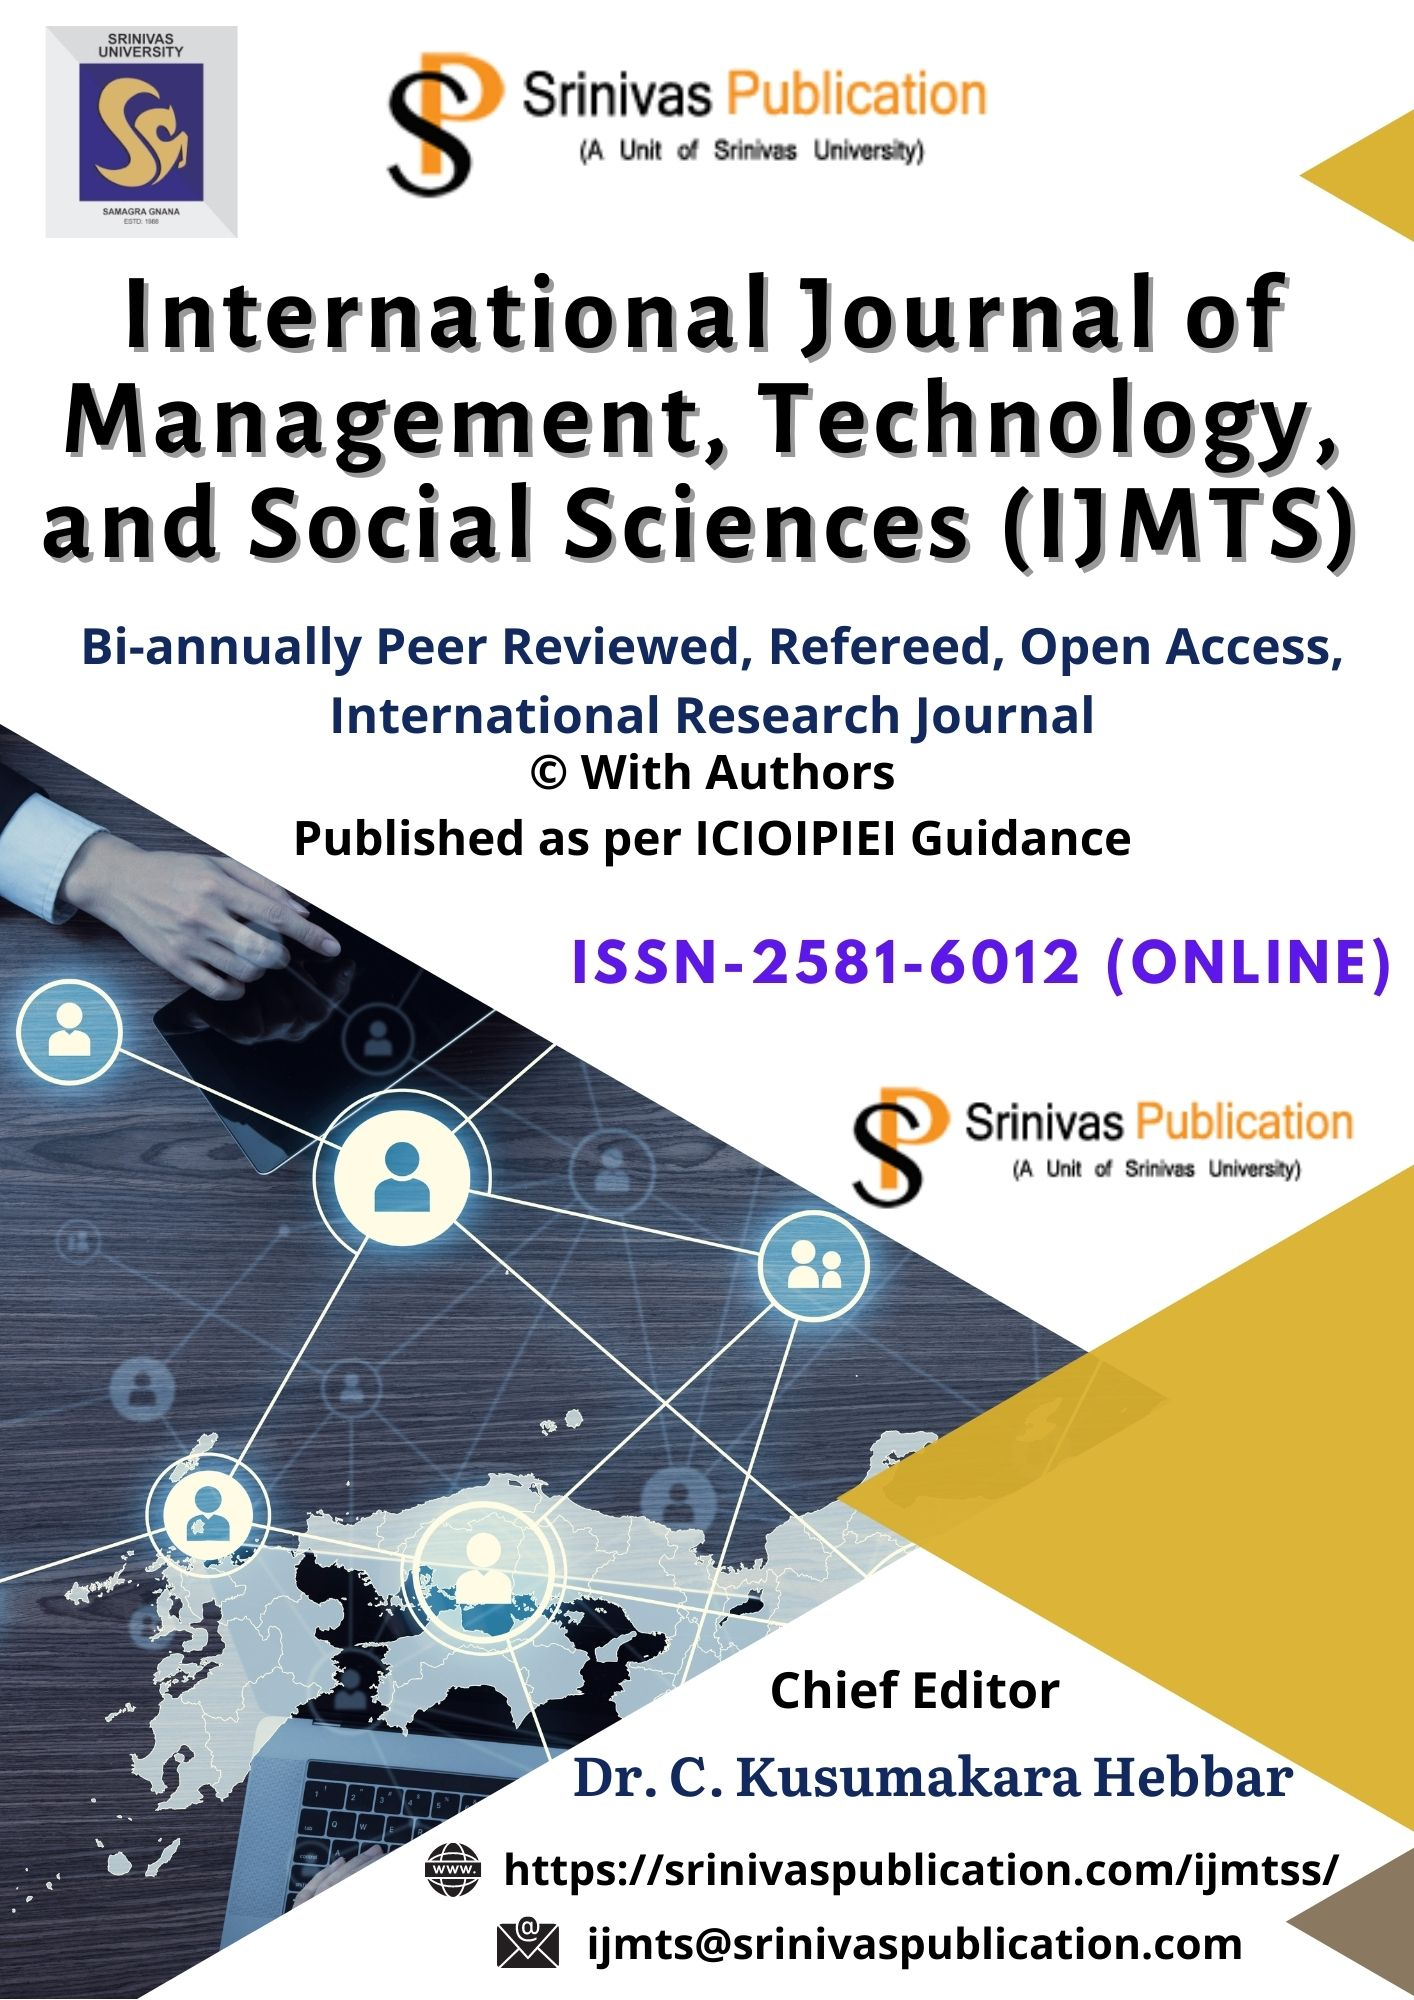 International Journal of  Management, Technology and Social Sciences (IJMTS) is an international, not-for-profit, open-access bi-annual online Refereed journal that accepts research works from scholars, academicians, professors, doctorates, lecturers and corporate in their respective expertise of studies. The aim of IJMTS is to publish peer reviewed research and review articles. The mission of this journal is to publish original contributions in its field to promote research in various disciplines. IJMTS aims to bring pure academic research and more practical publications. So it covers the full range of research applied to various sciences that meet the future demands. All submitted articles should report original, previously unpublished (experimental or theoretical) research and results. All the submissions in the scope of IJMTS will be peer-reviewed. All submissions are also checked for plagiarism. The length of the manuscript must be between five (5) to twenty (20) journal pages excluding references.